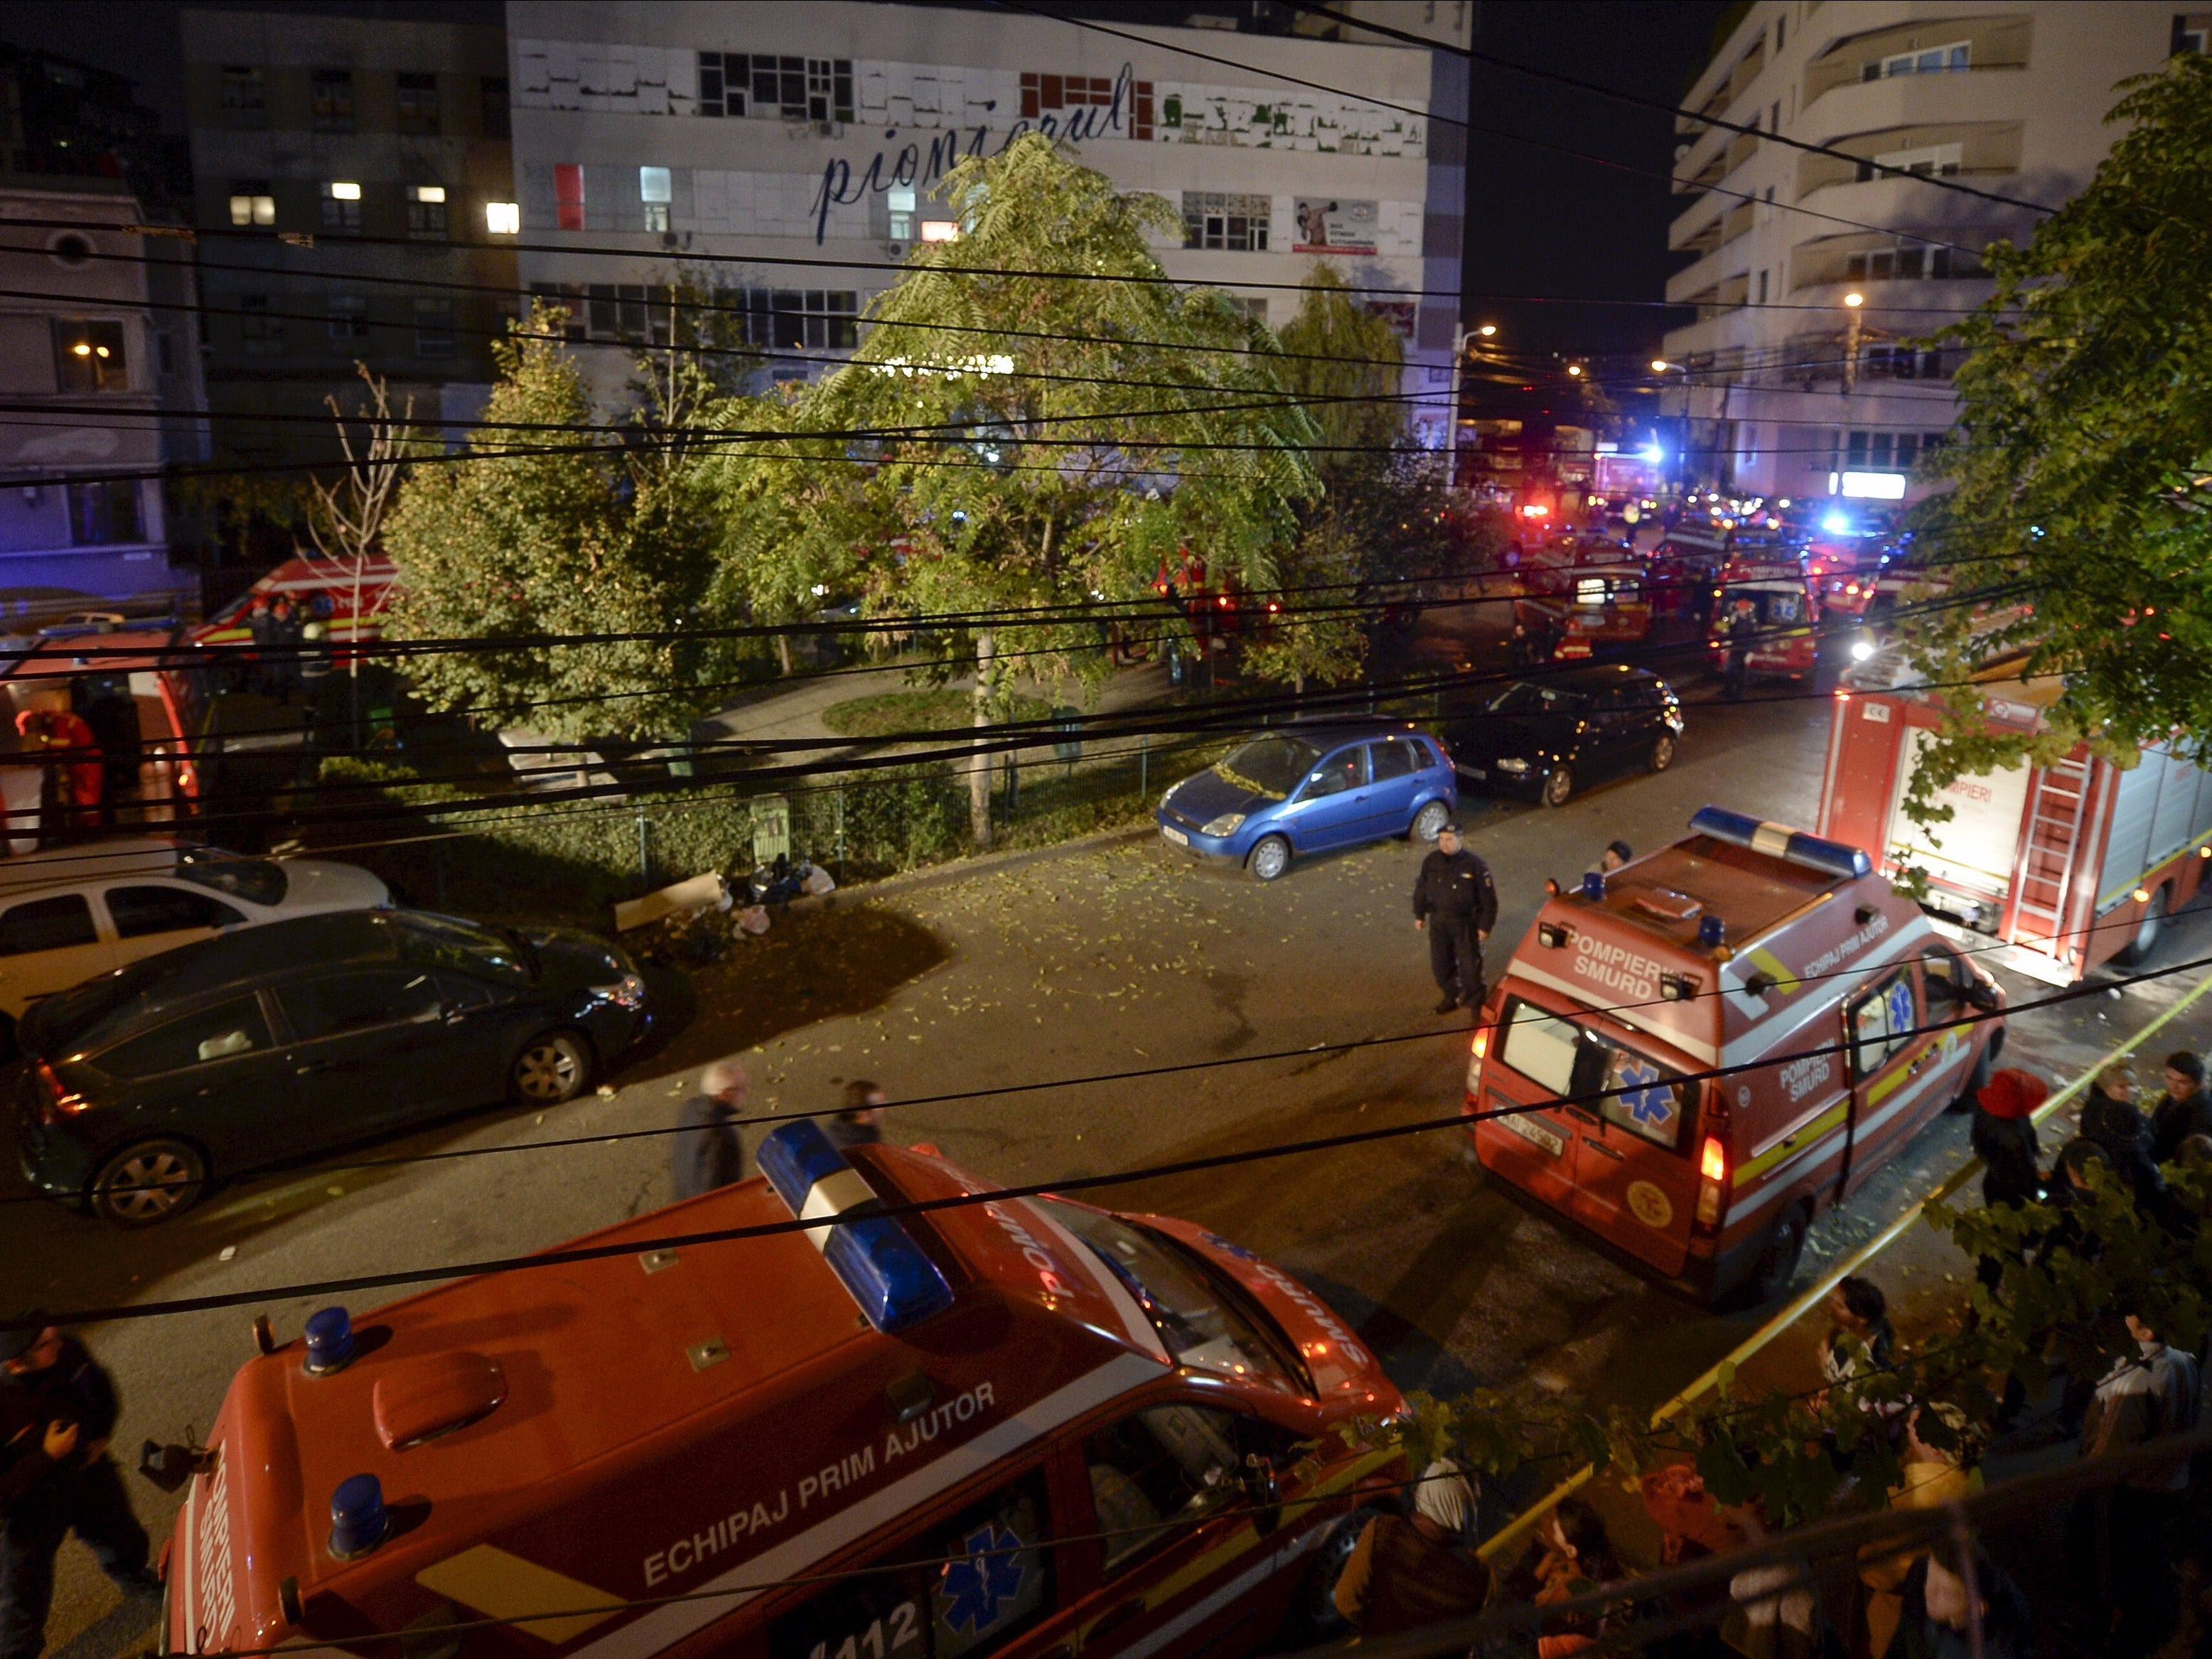 Romania nightclub explosion